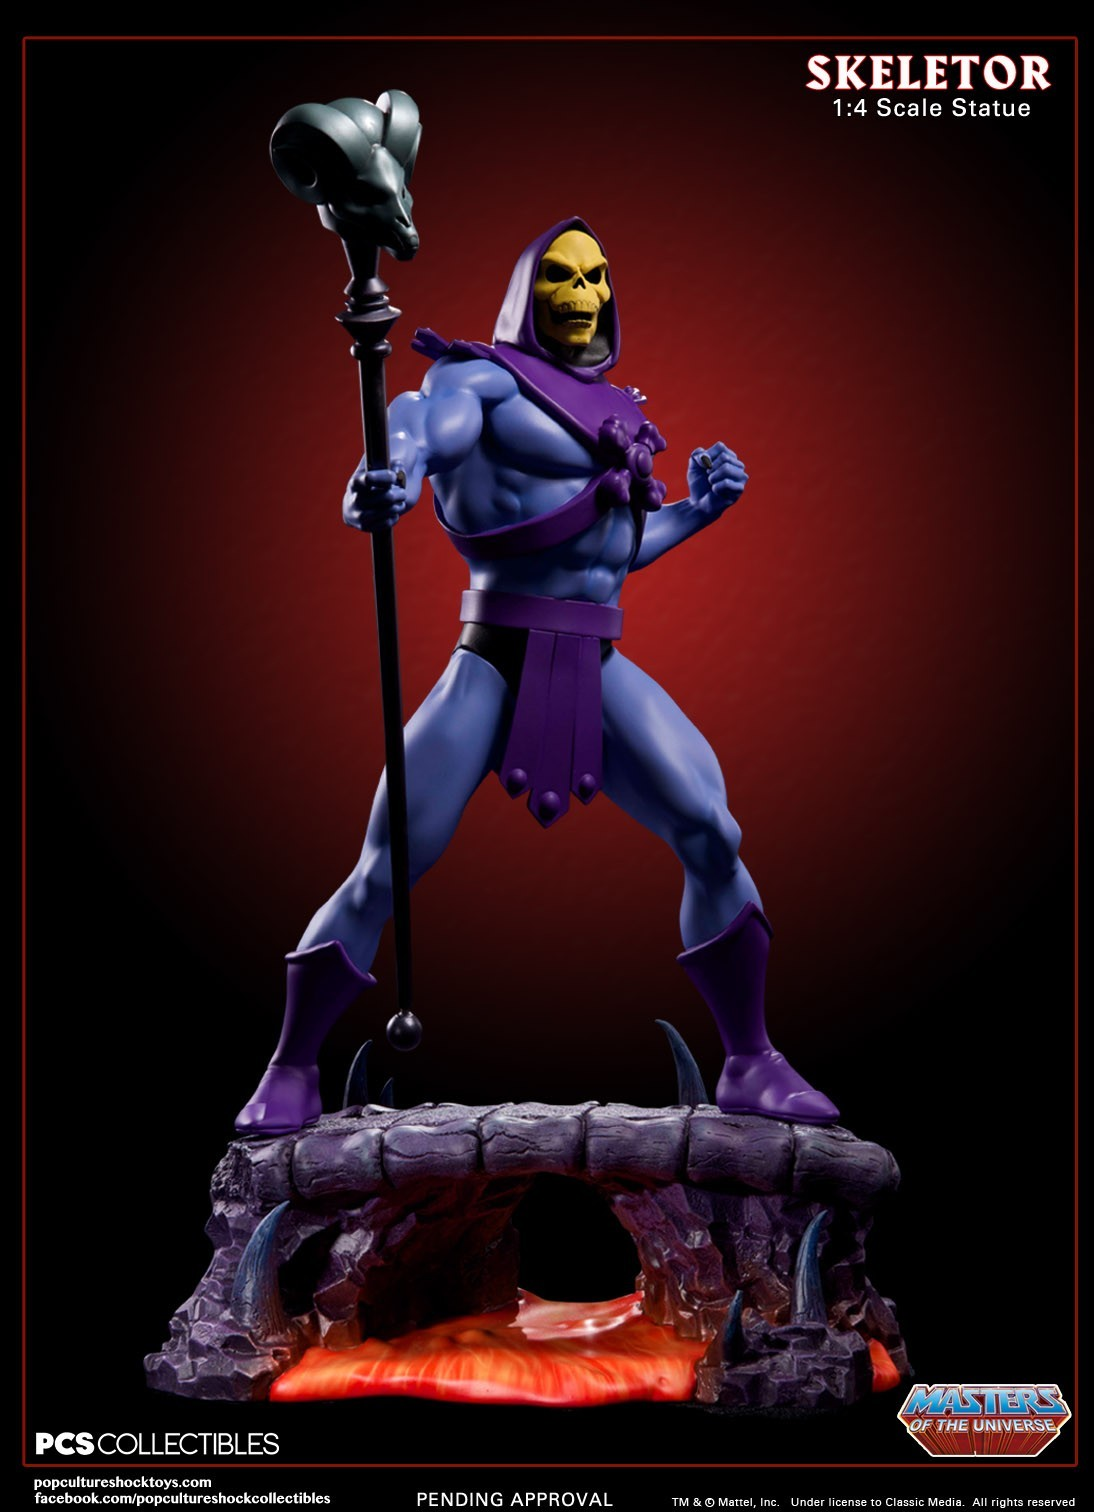 Alejandro pereira skeletor media d 1